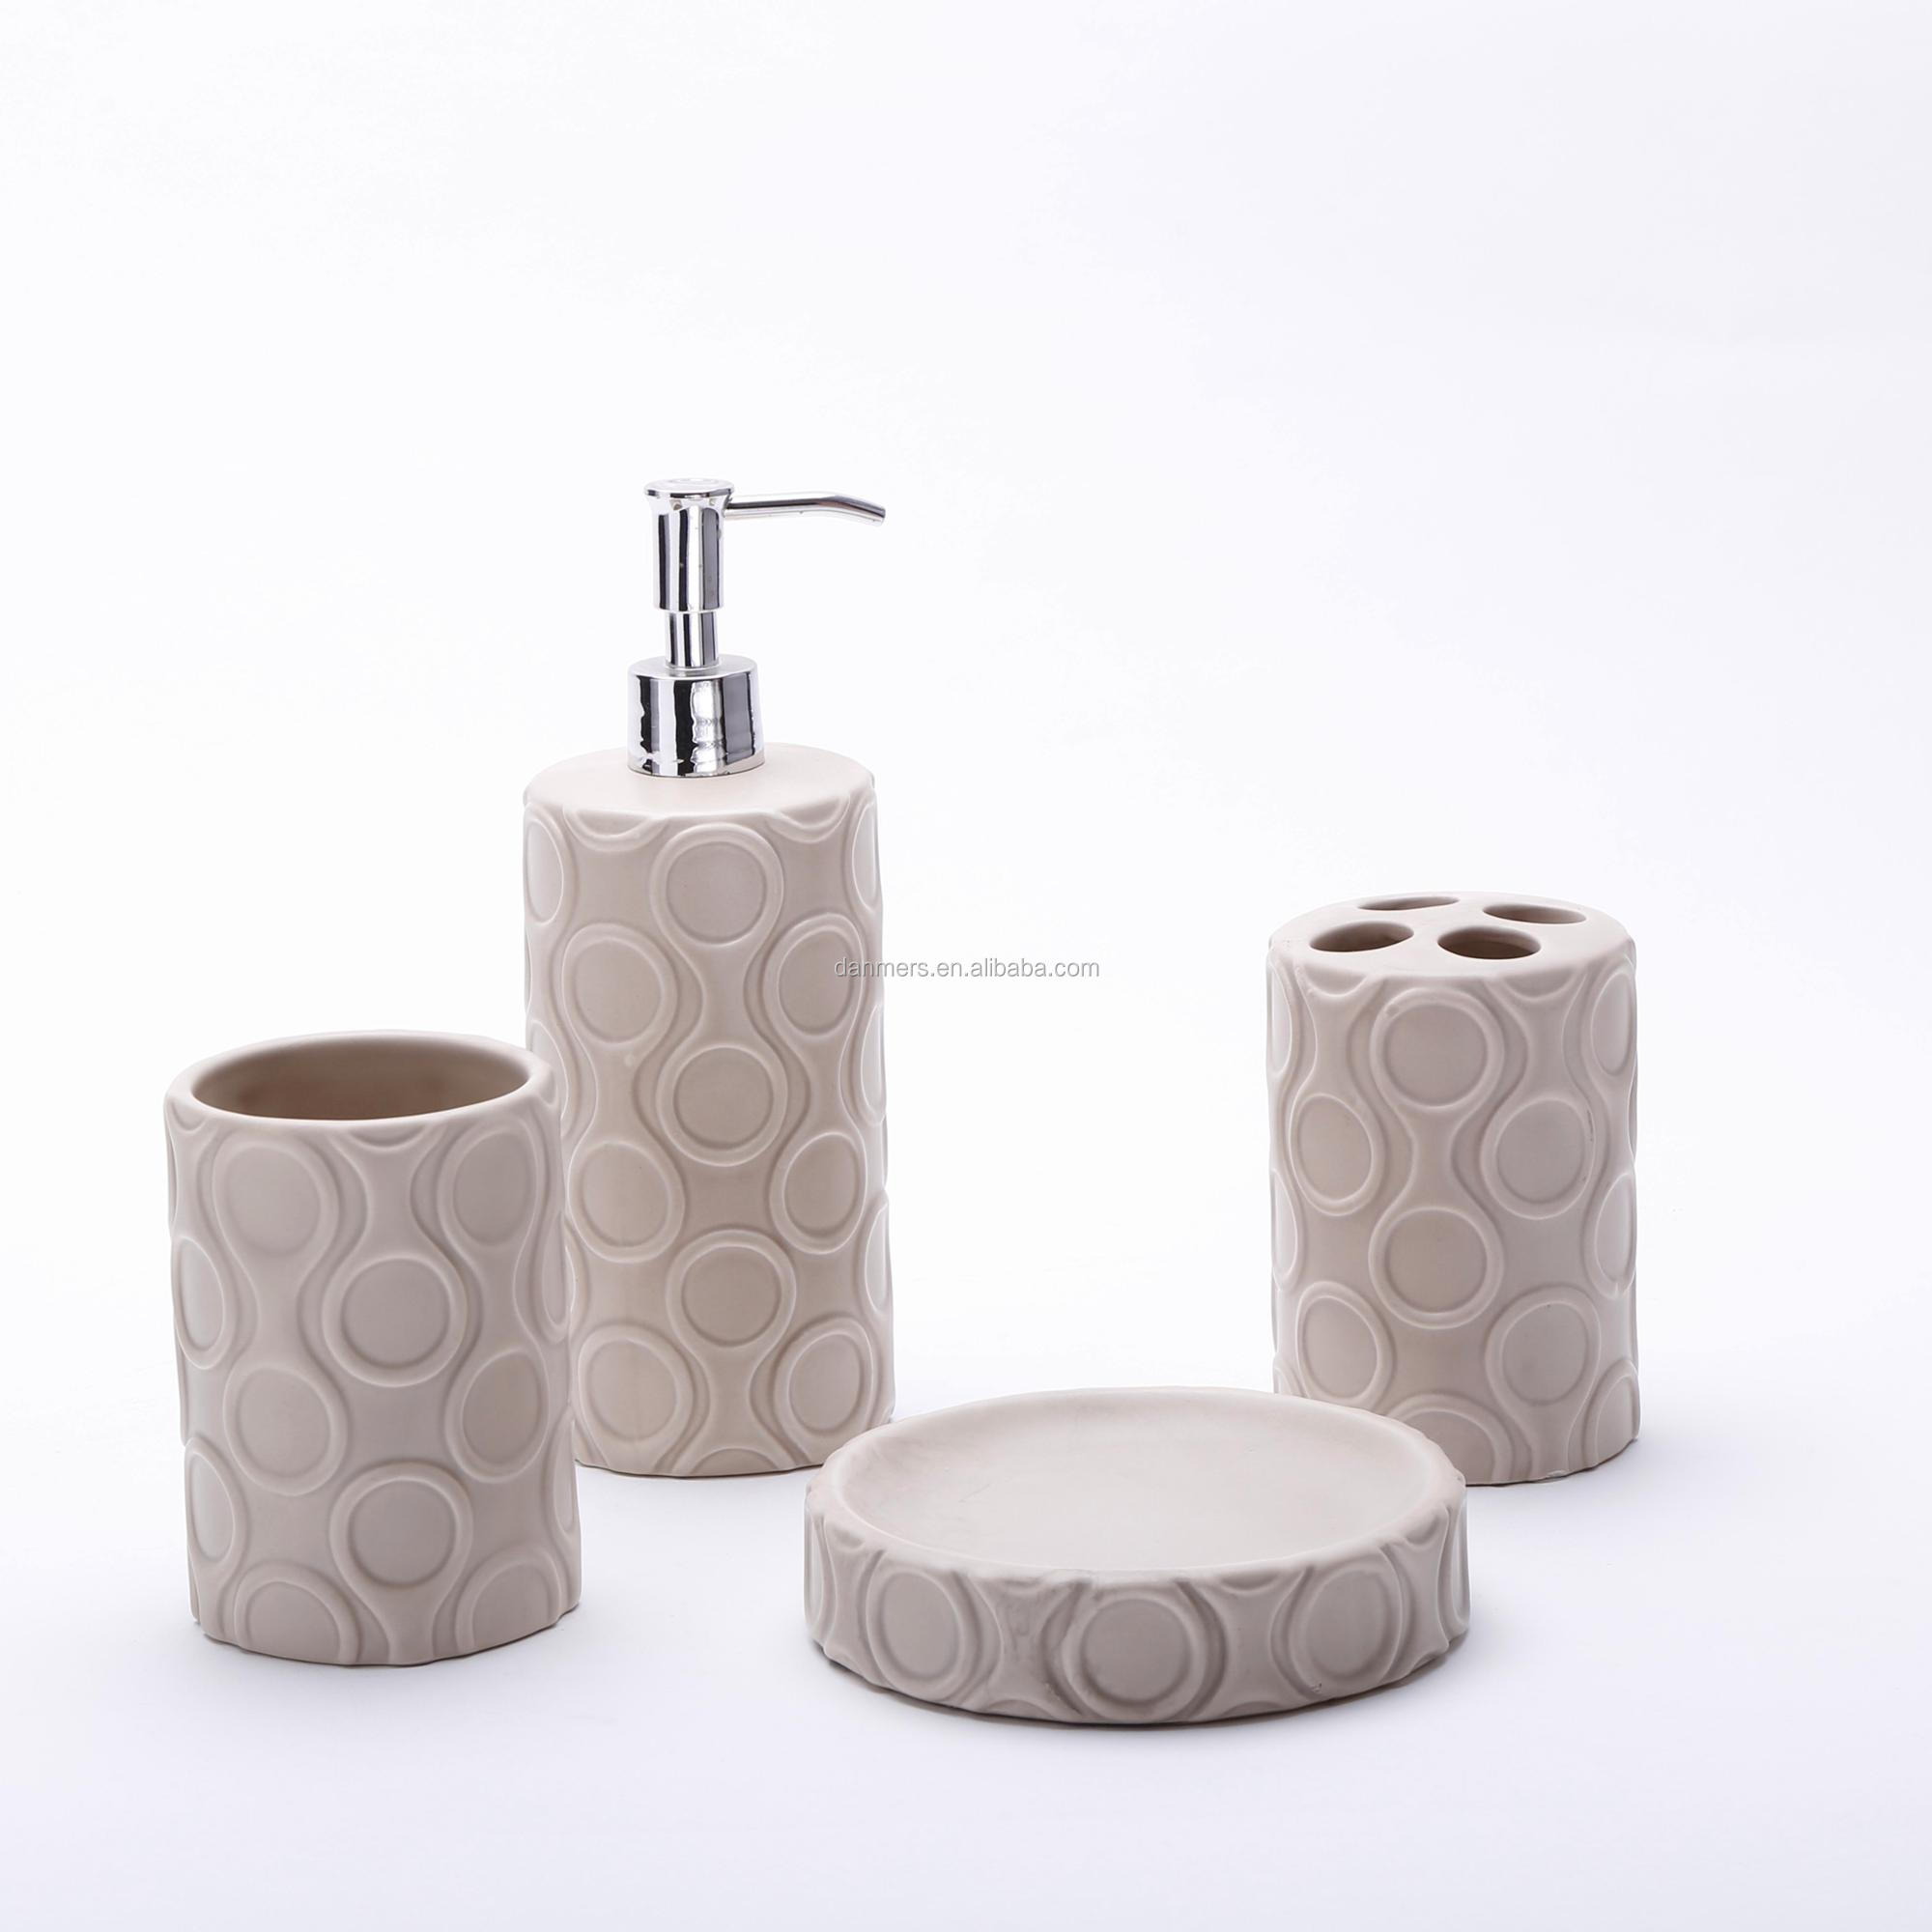 Chaozhou Factory Whole Personalized Bathroom Accessories